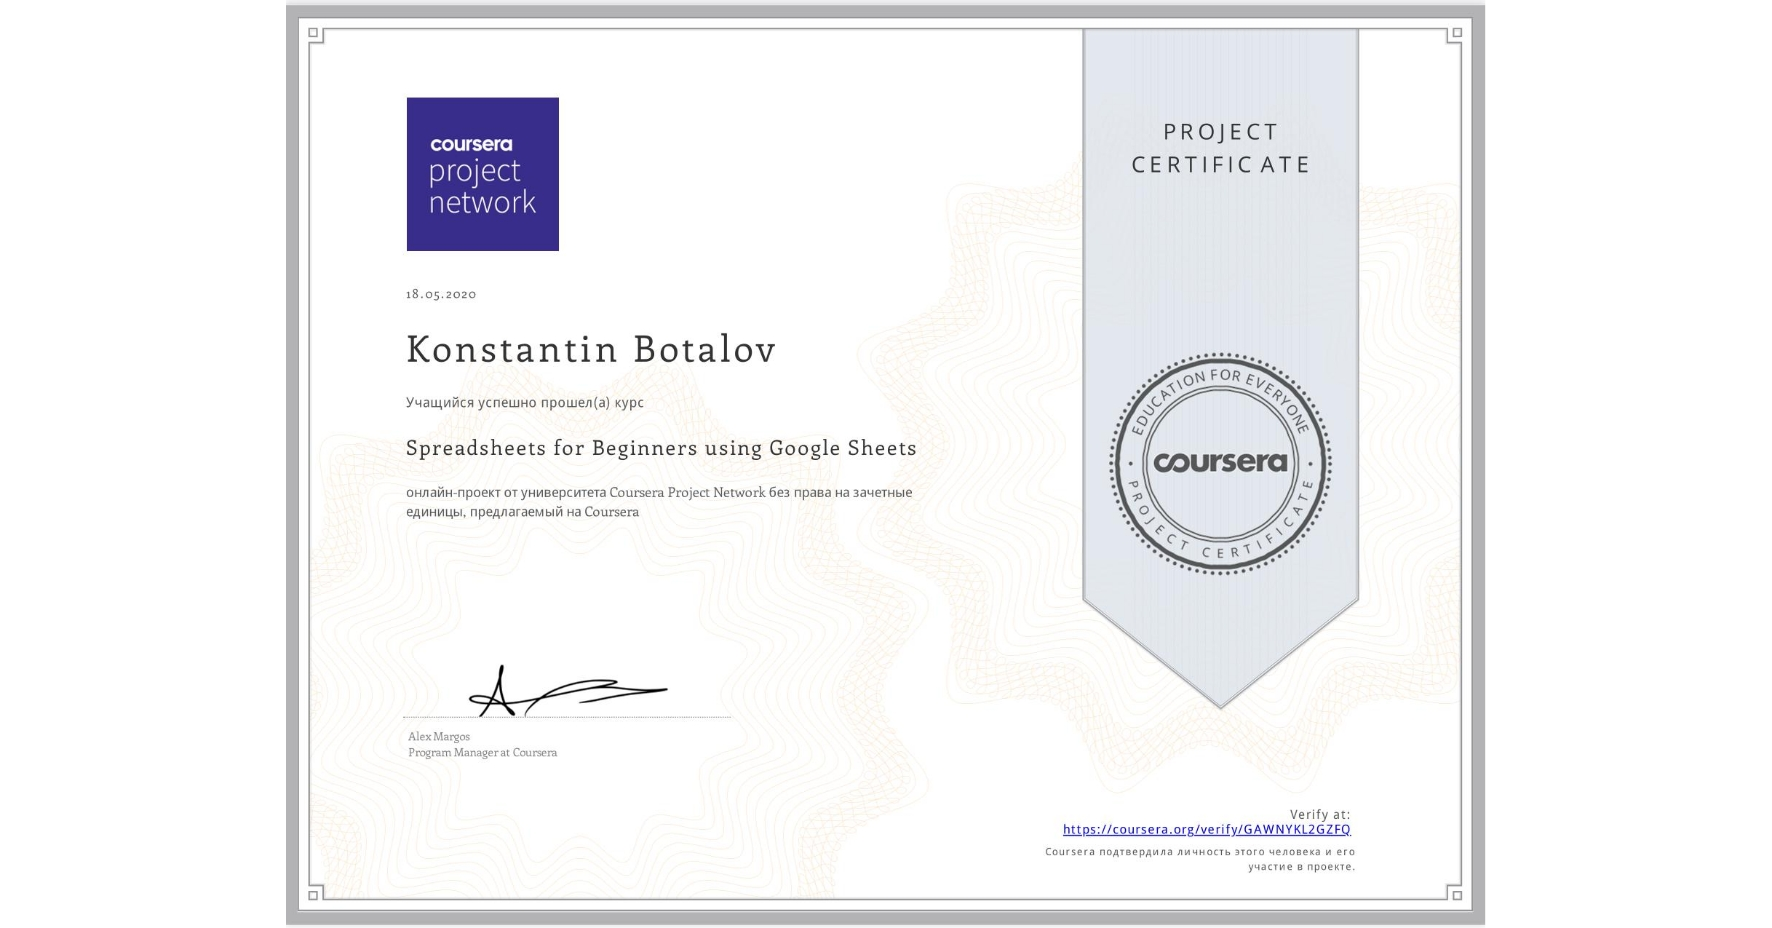 View certificate for Konstantin Botalov, Spreadsheets for Beginners using Google Sheets, an online non-credit course authorized by Coursera Project Network and offered through Coursera